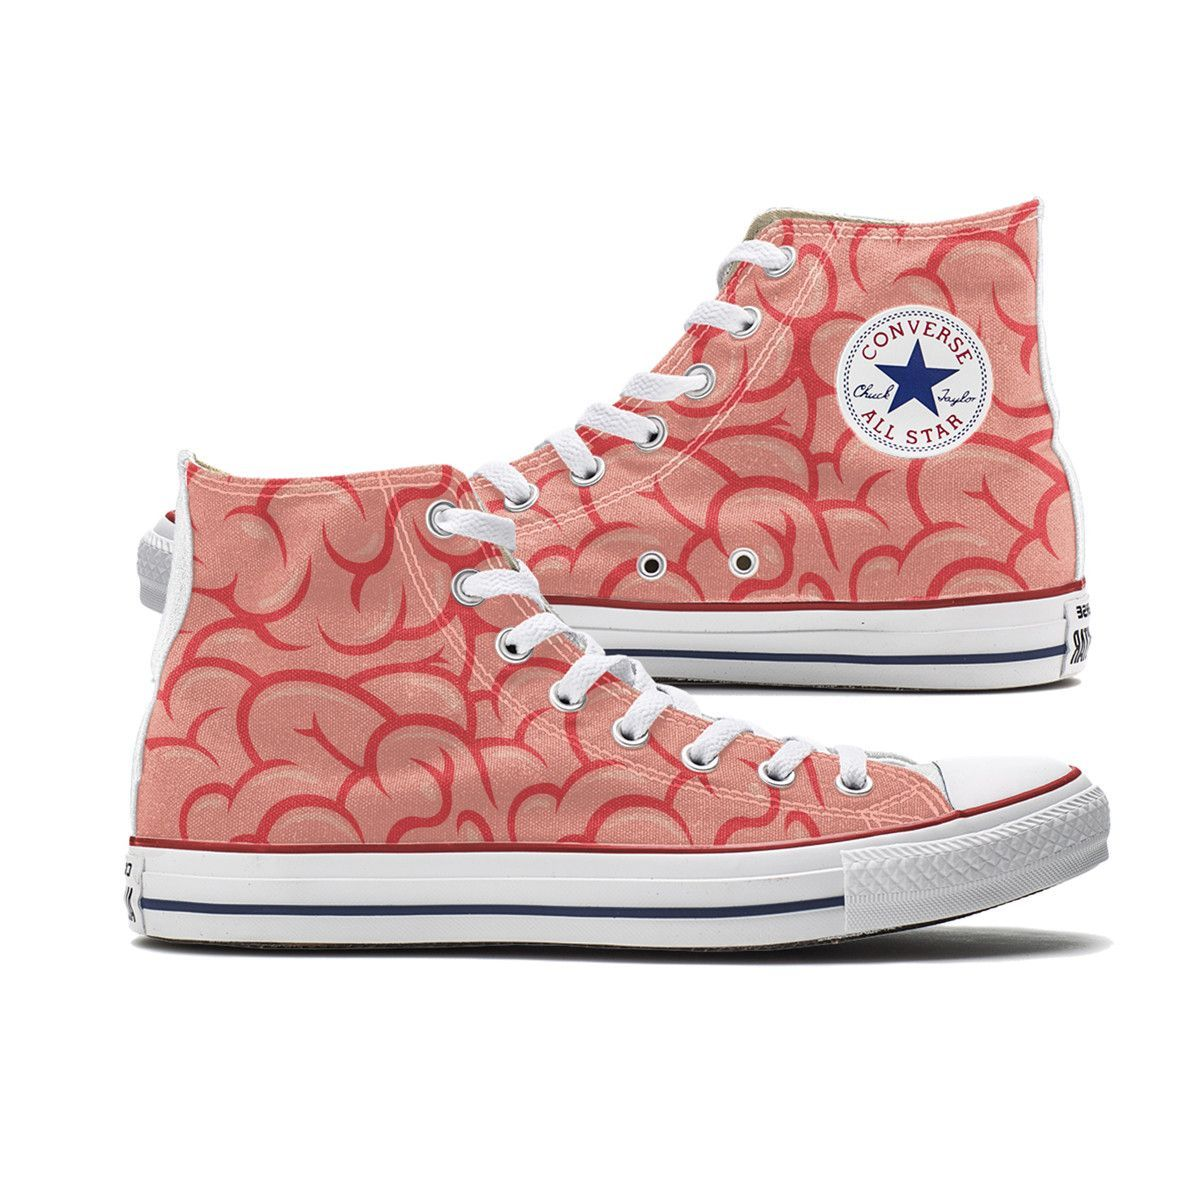 Custom Brains Converse High Tops will have you thinking on your toes ...